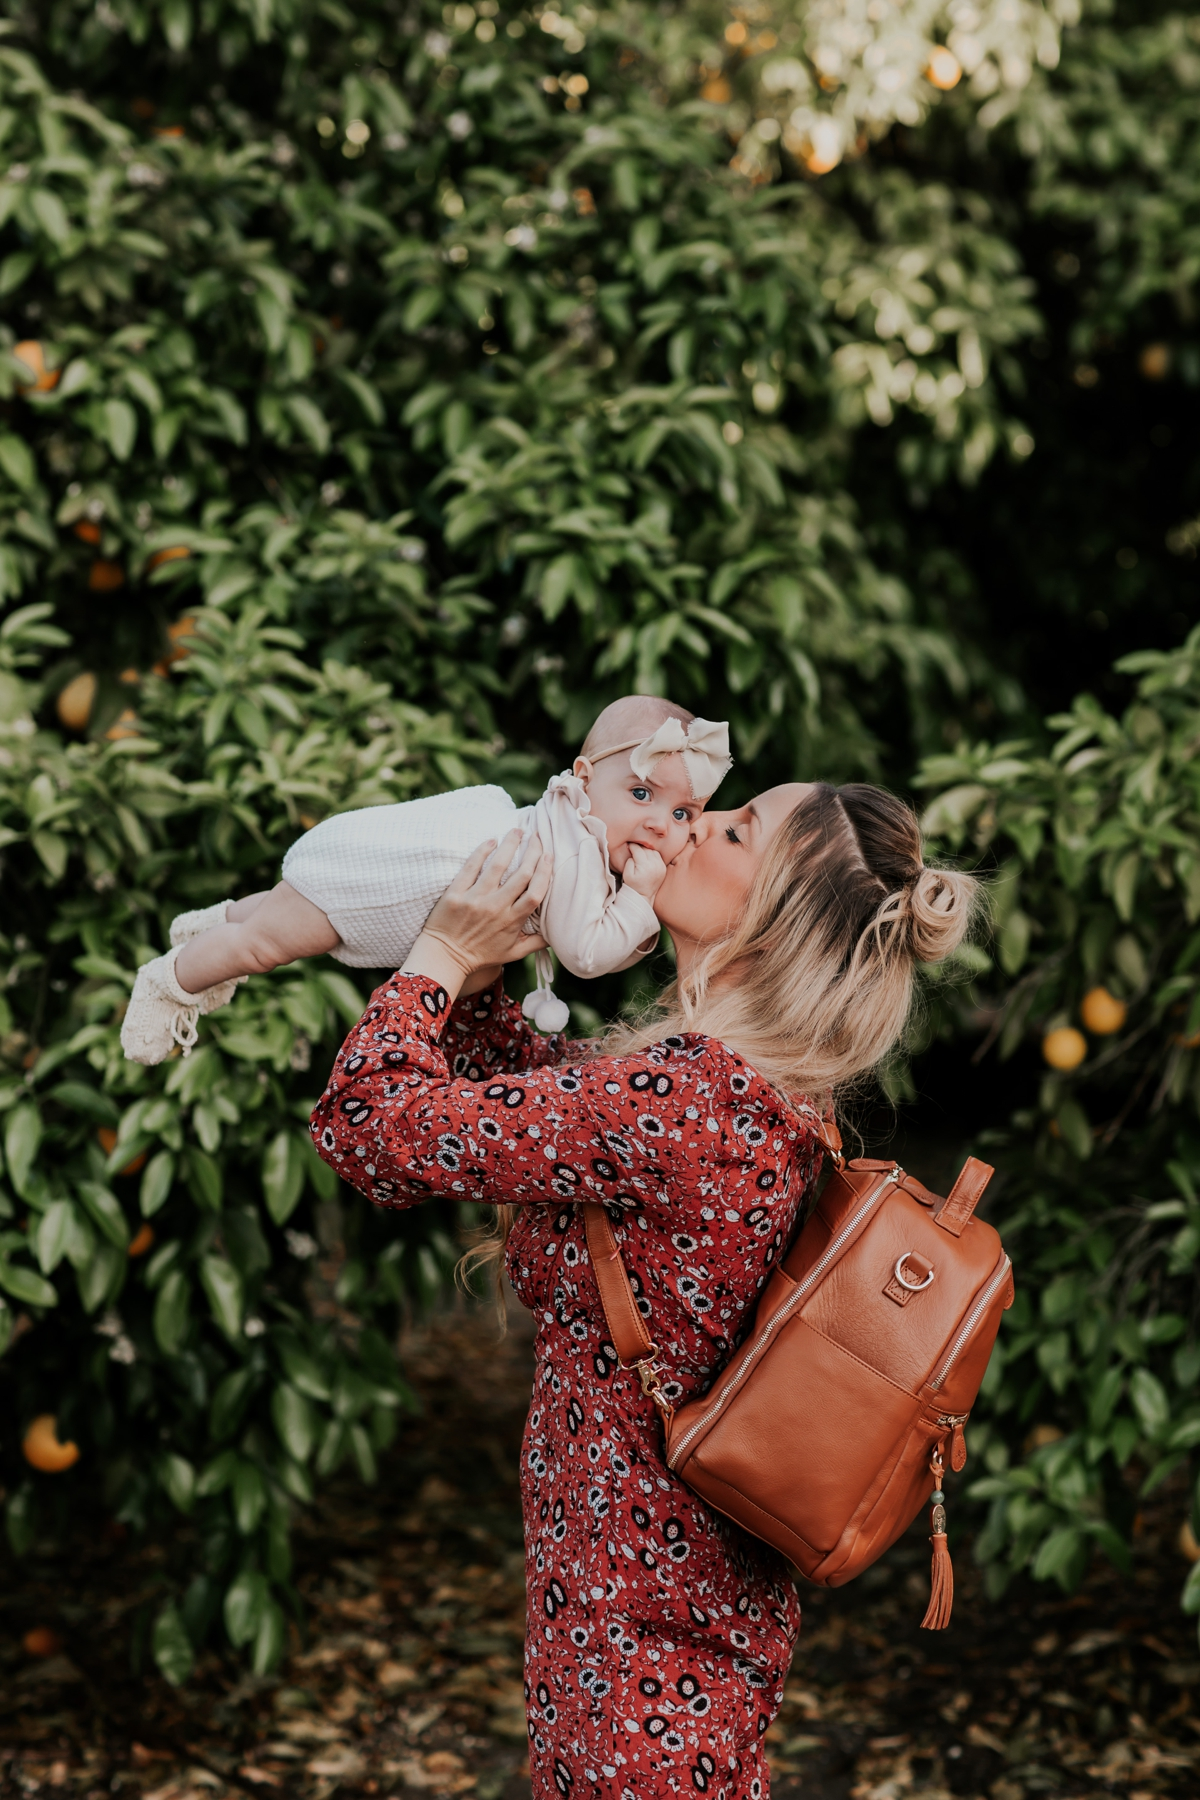 Kandis_Marino_Photography_Lifestyle_Lily_Jade_Diaper_Bag_Influencer_Abassador_Baby_Mom_Blogger_Mommy_Blog_Newborn_Pregnancy_0005.jpg